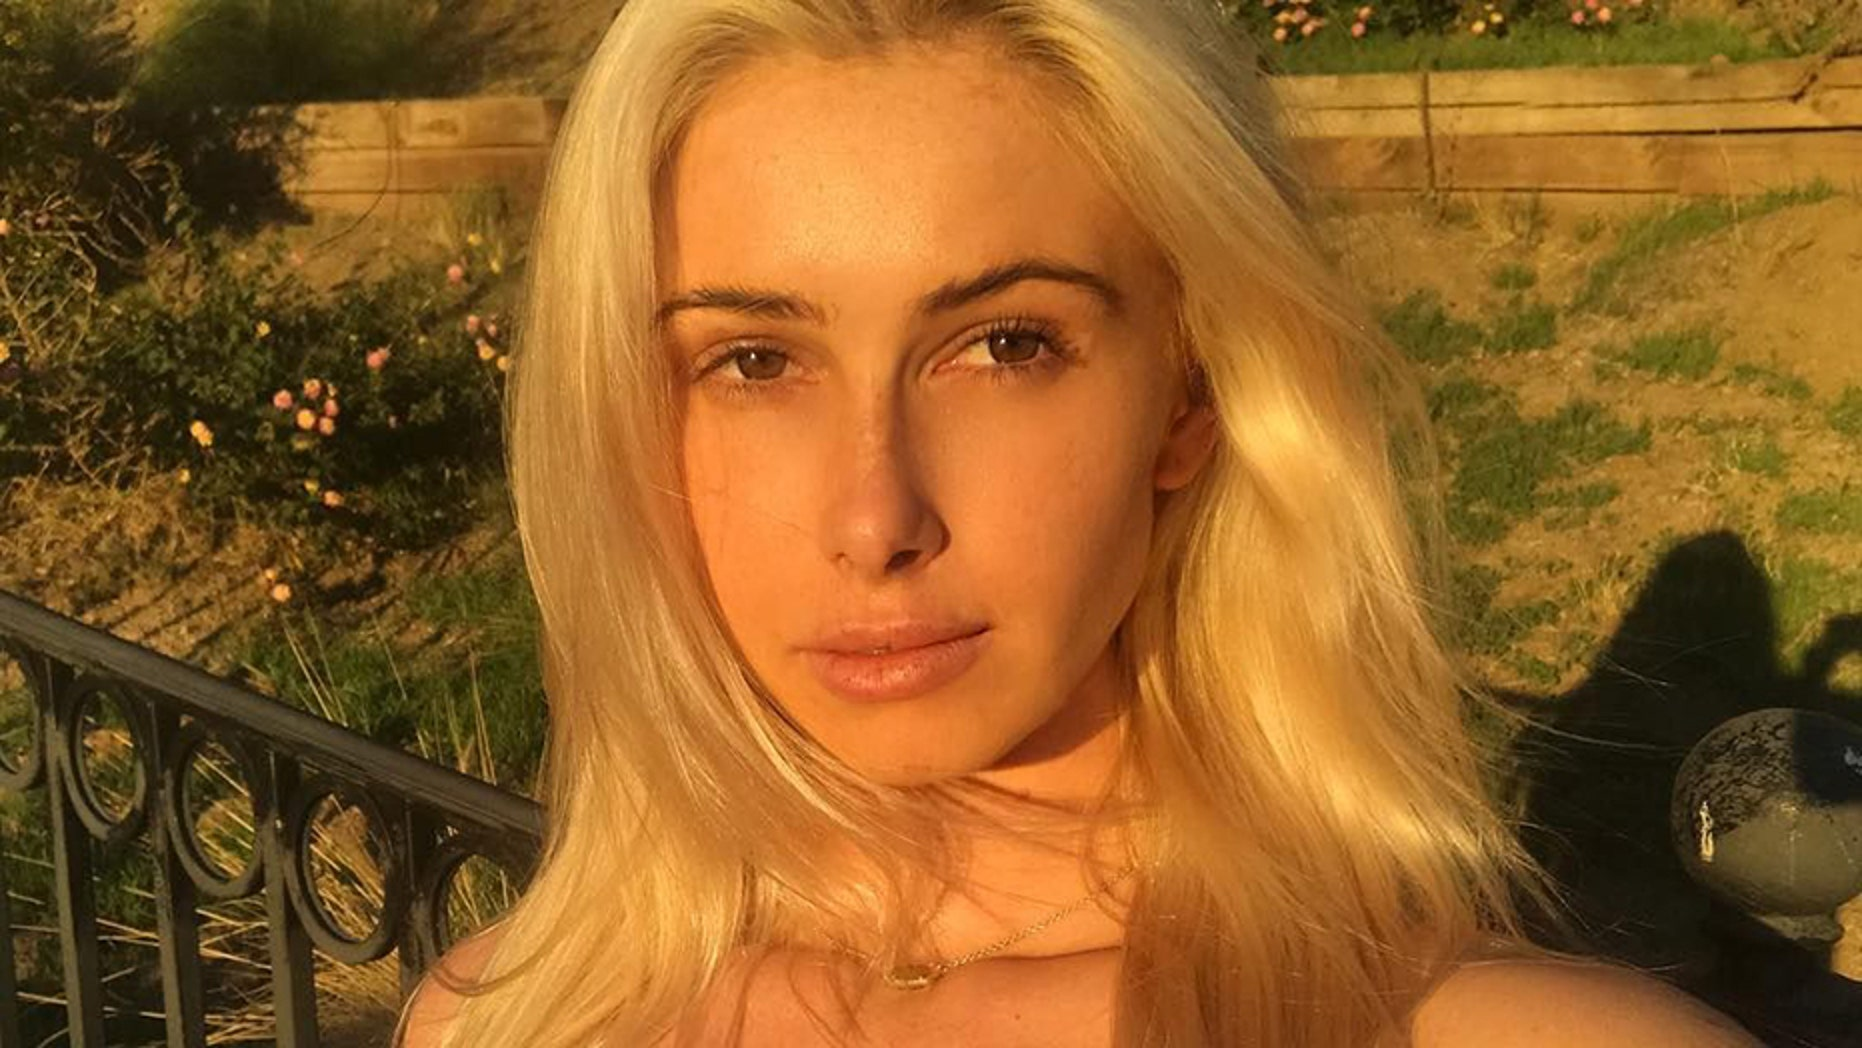 Mariah Sunshine Coogan, 23, was one of the six individuals authorities said died in Monday night's plane crash.